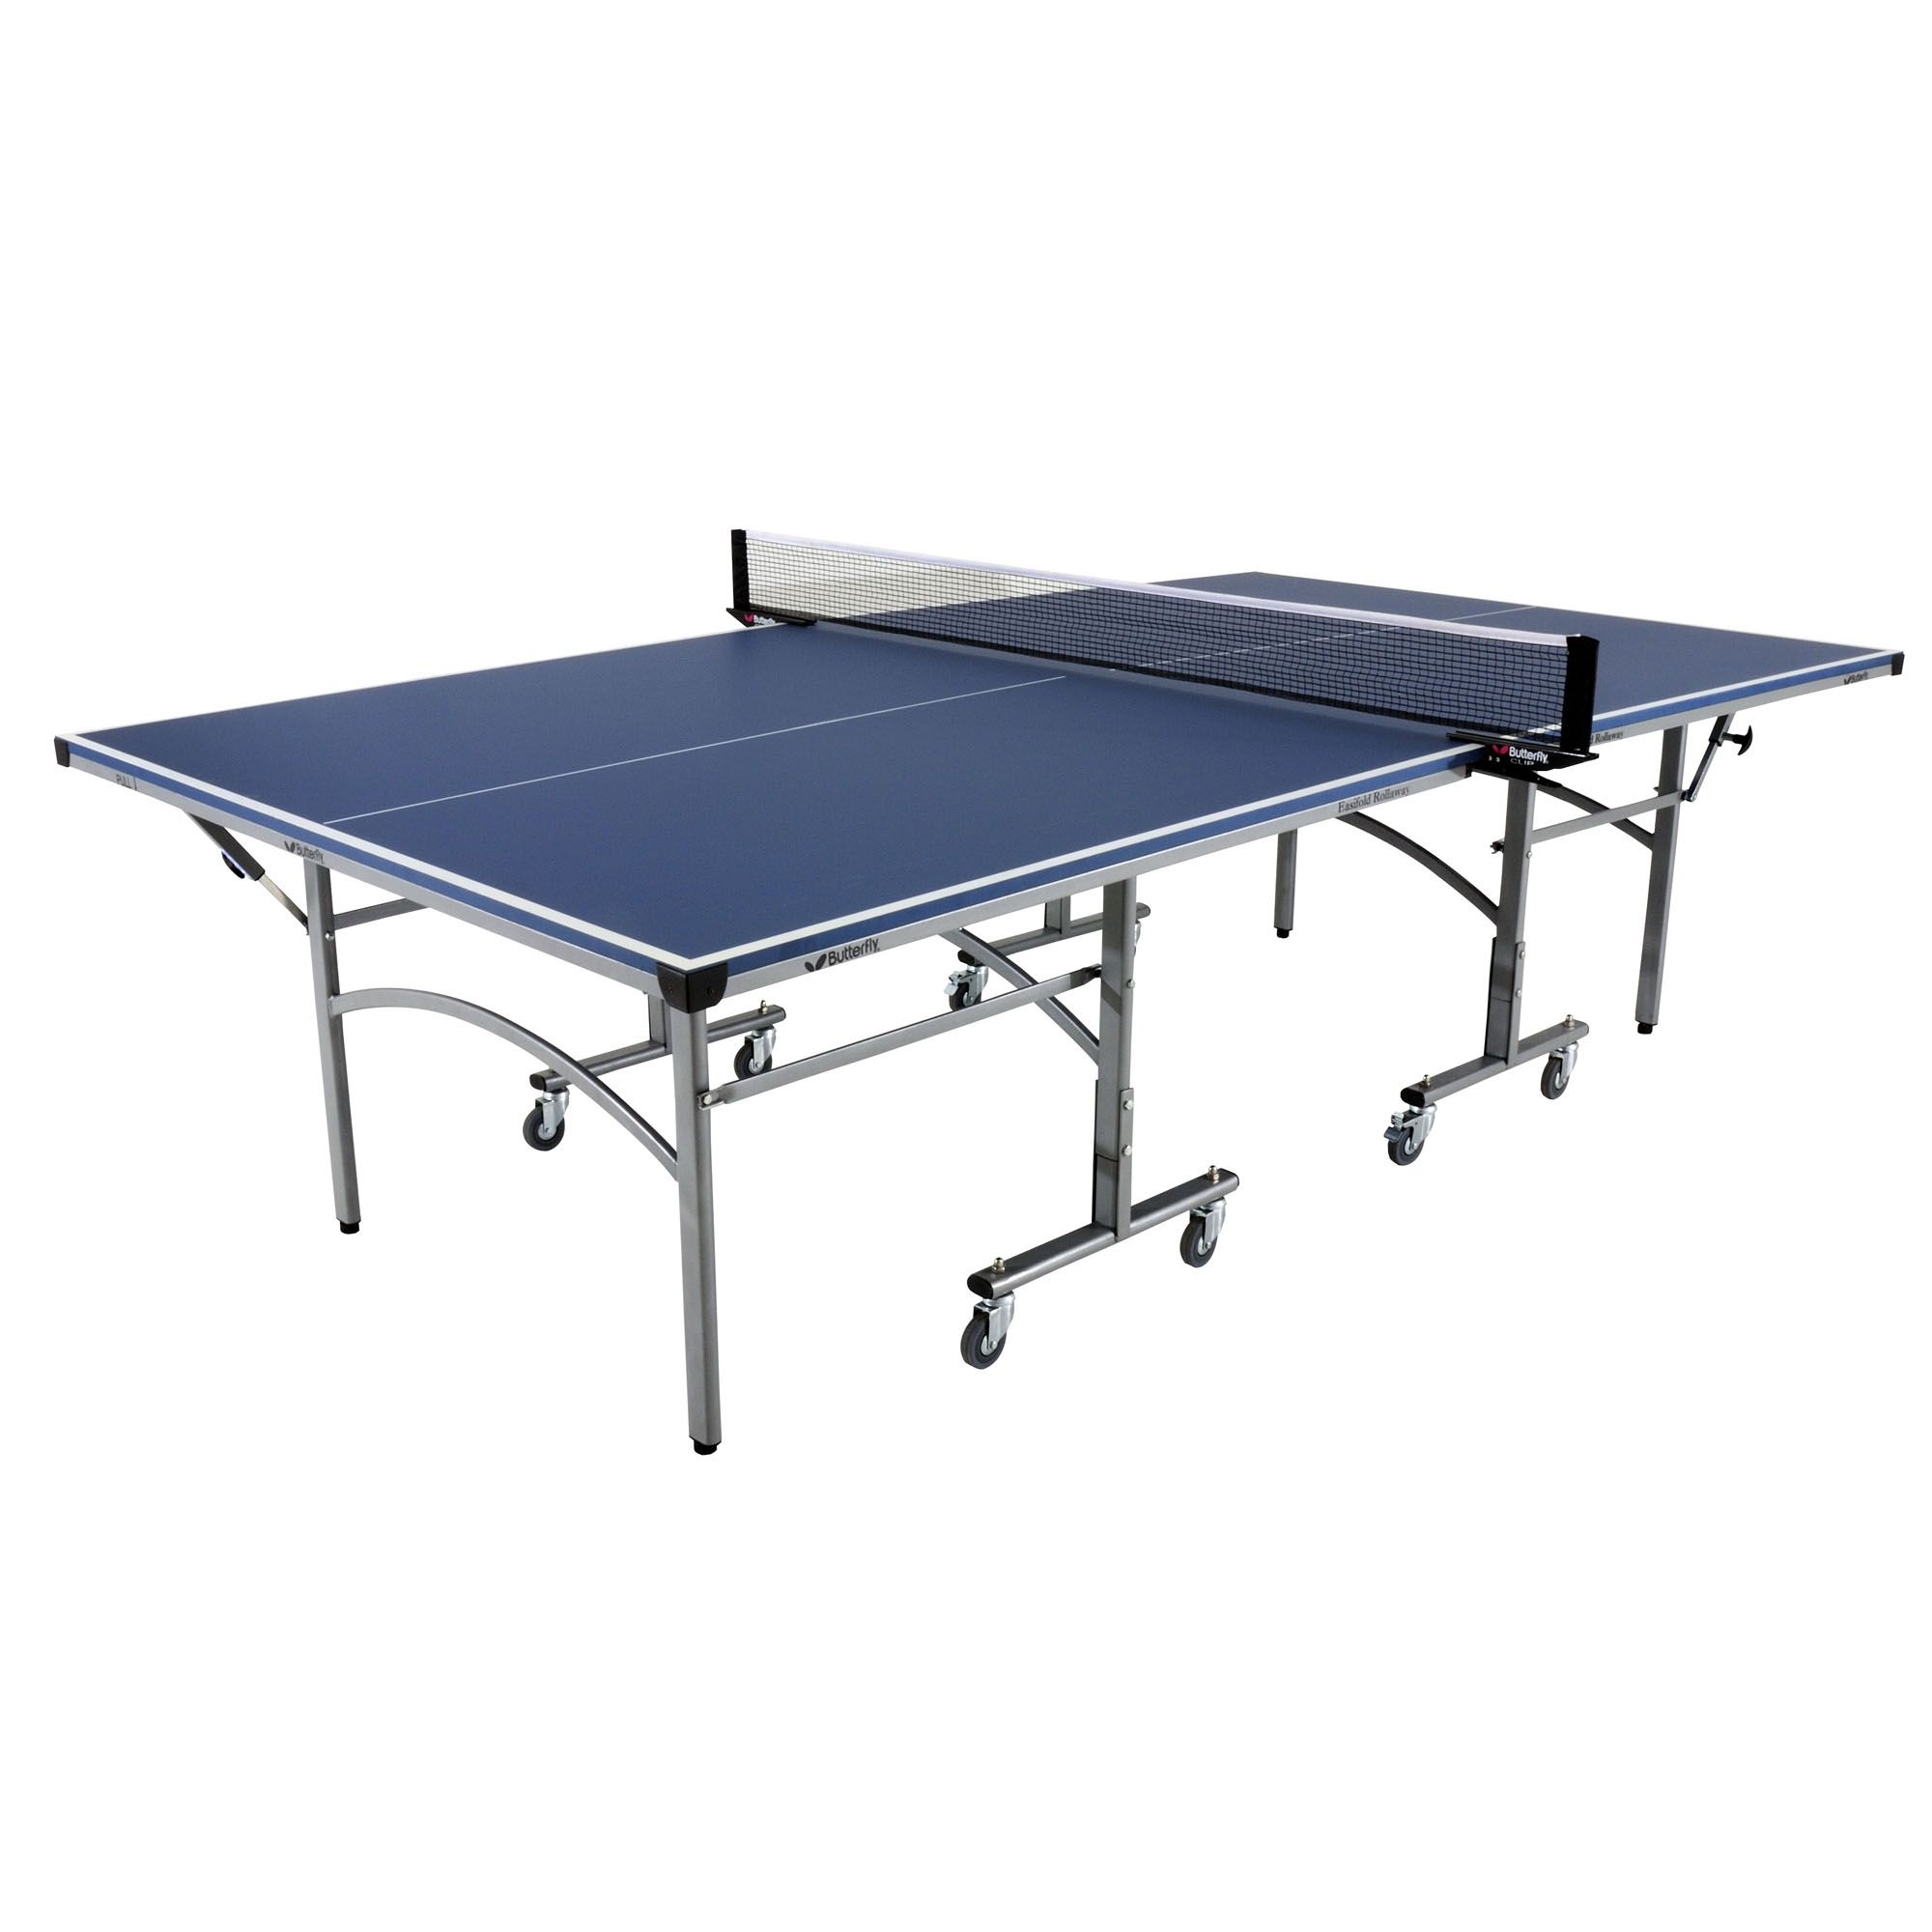 Butterfly easifold indoor table tennis table for Table tennis